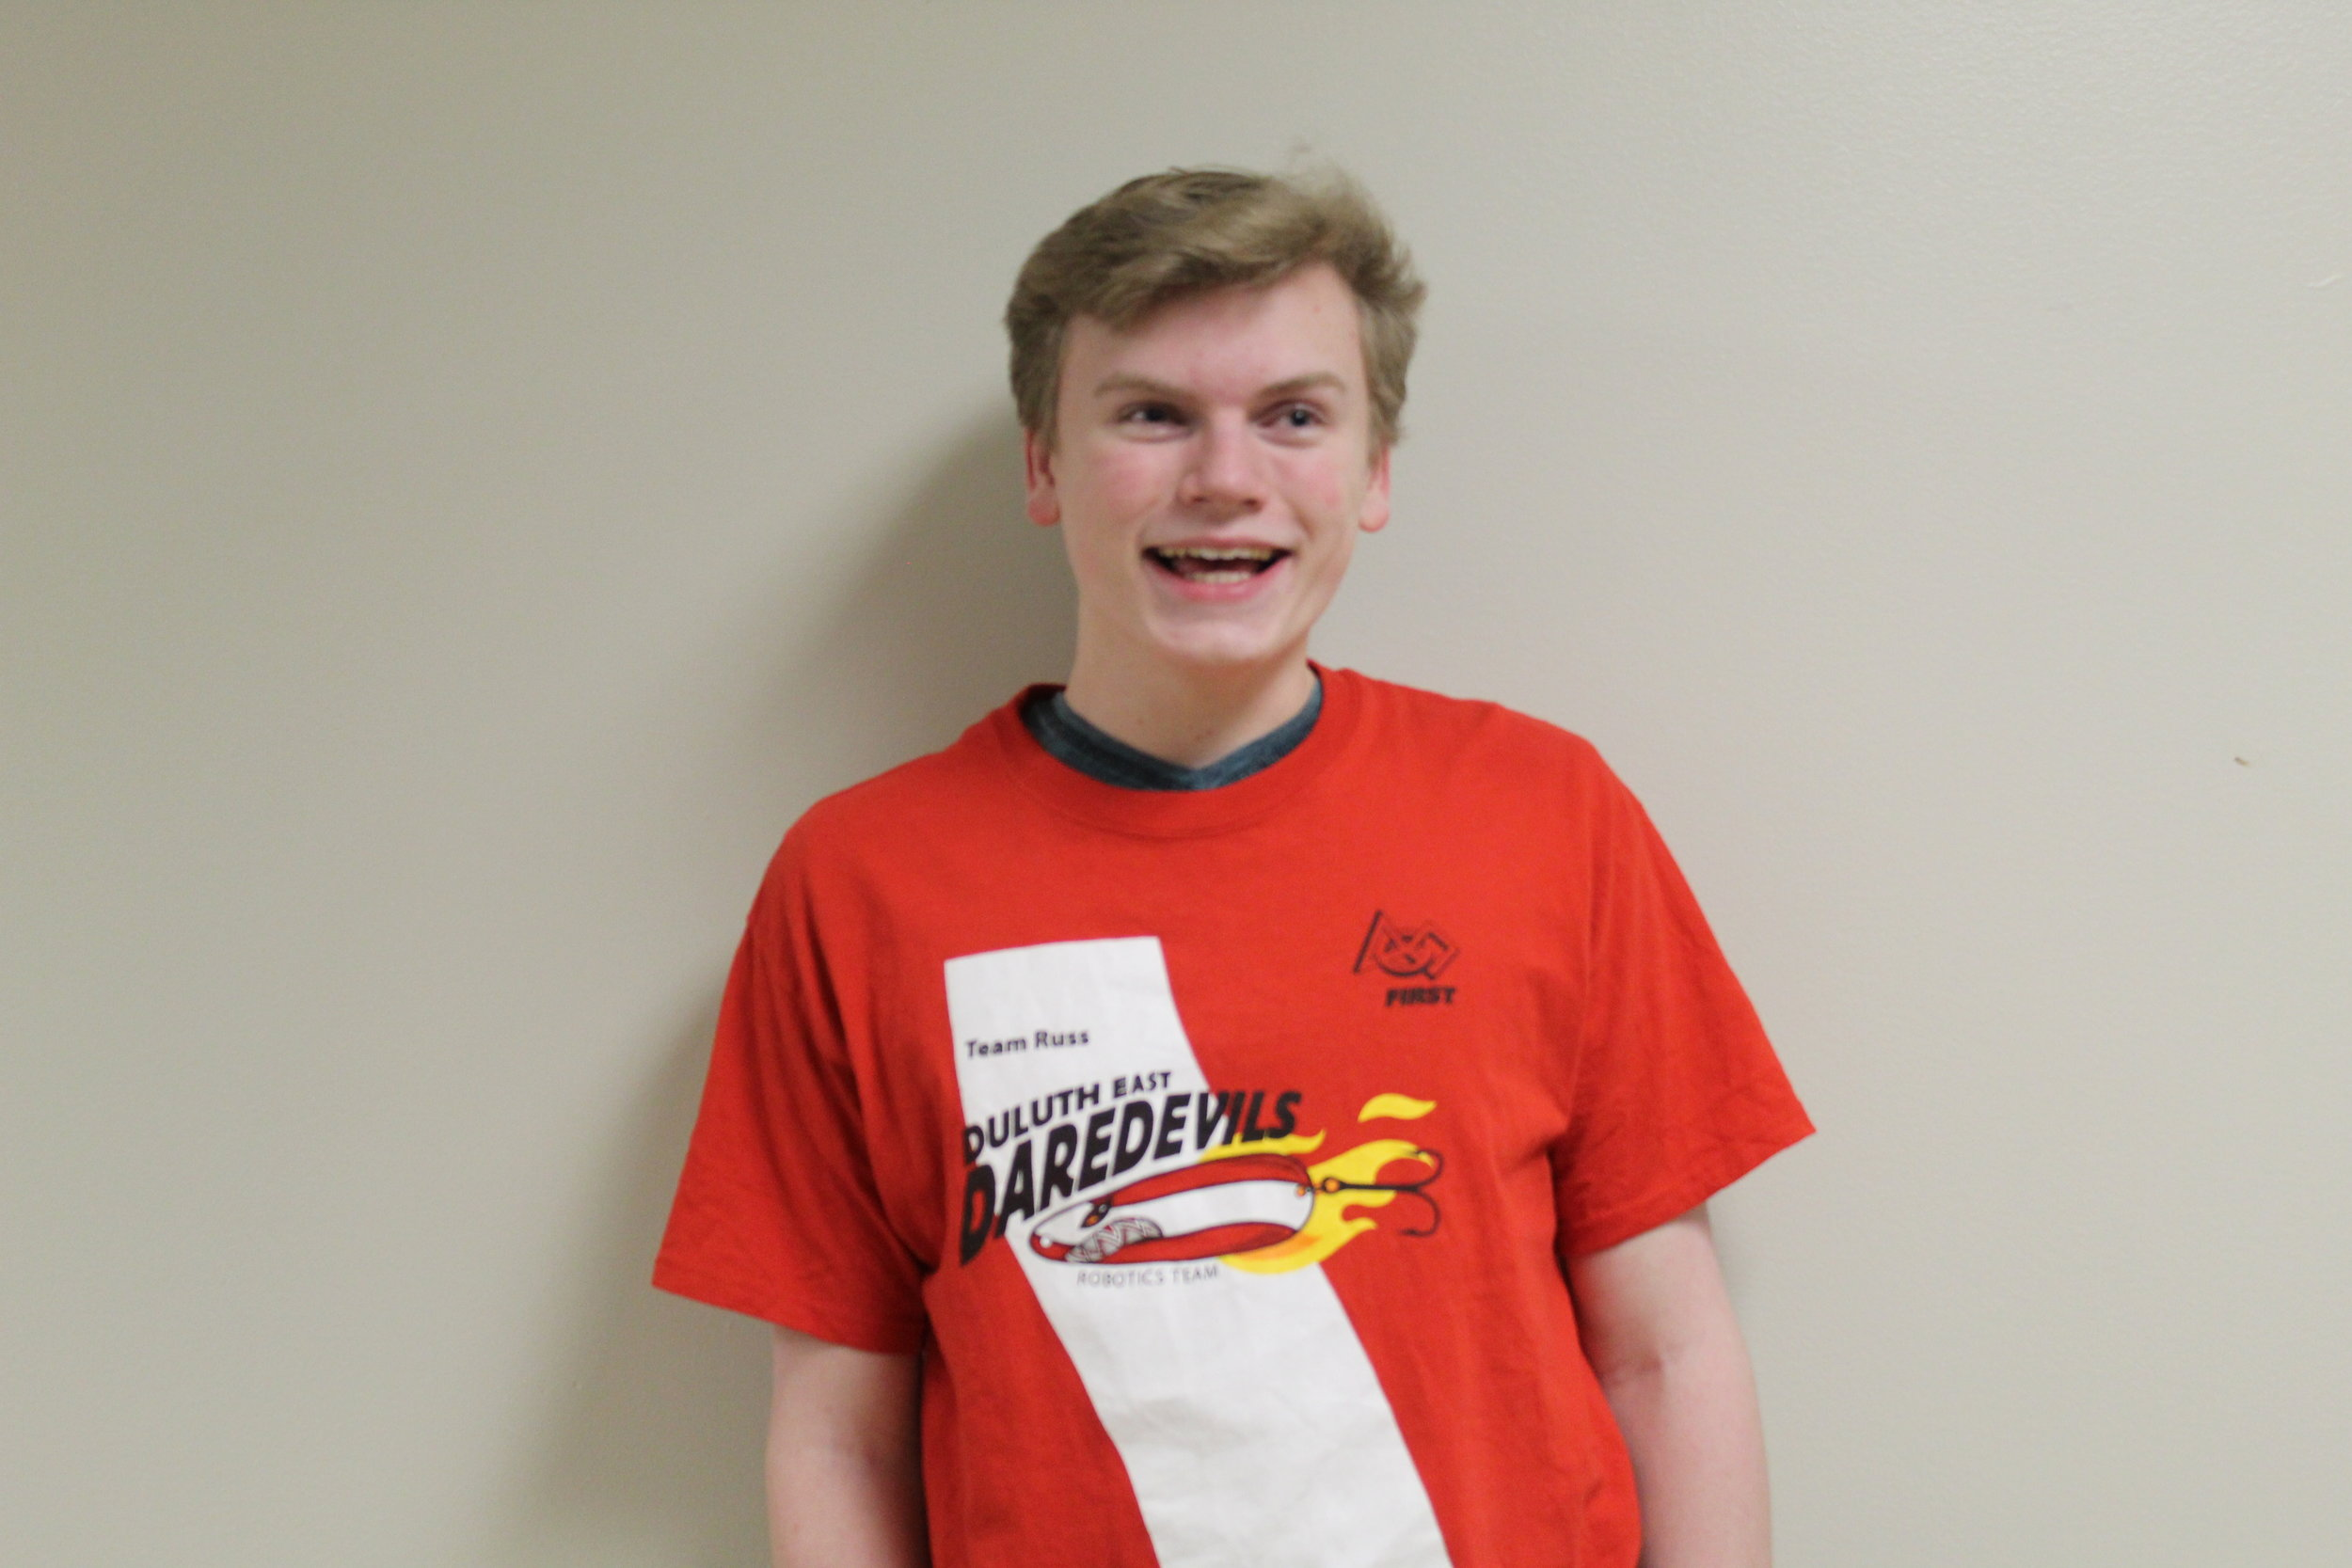 anders s-b. - Anders is a junior that joined the team this year and is part of the CAD department. He joined the team because he thought his skills should be put to good use. He plans on going to LSC for his generals — from there, the sky's the limit.